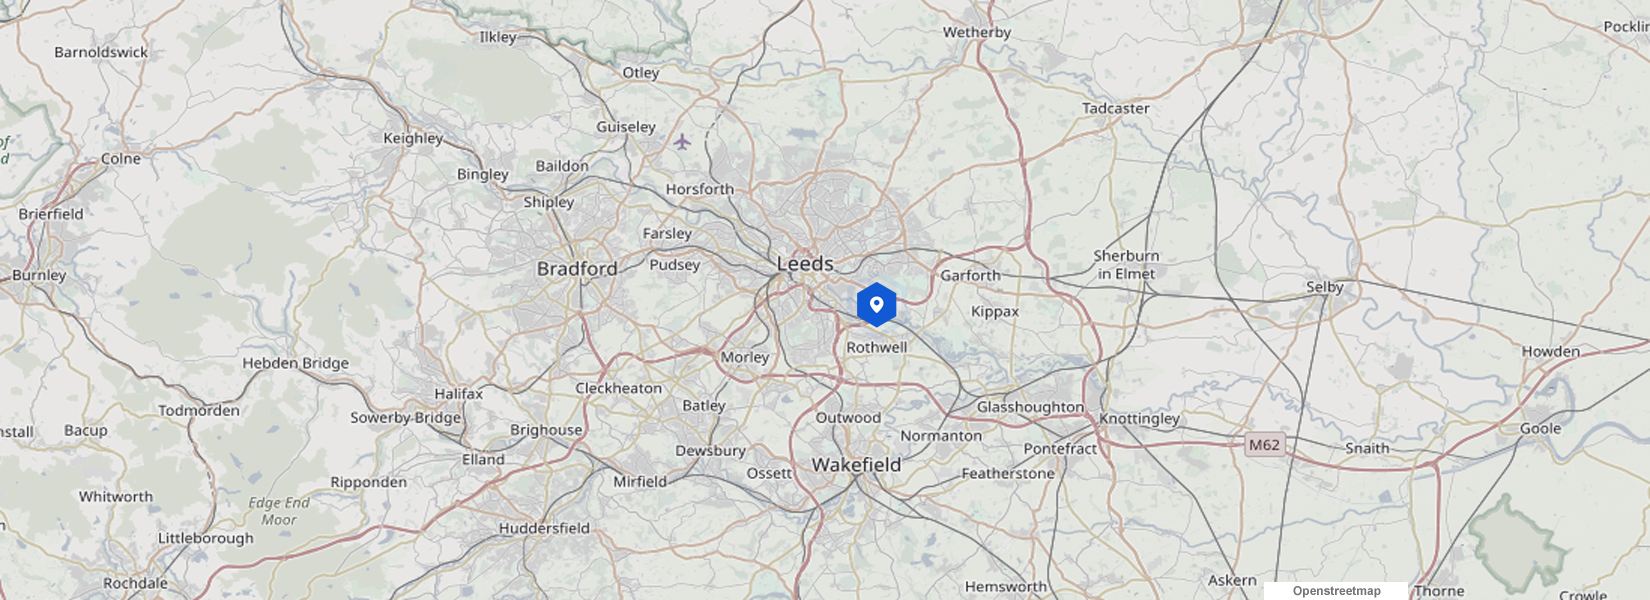 Leeds map - our location